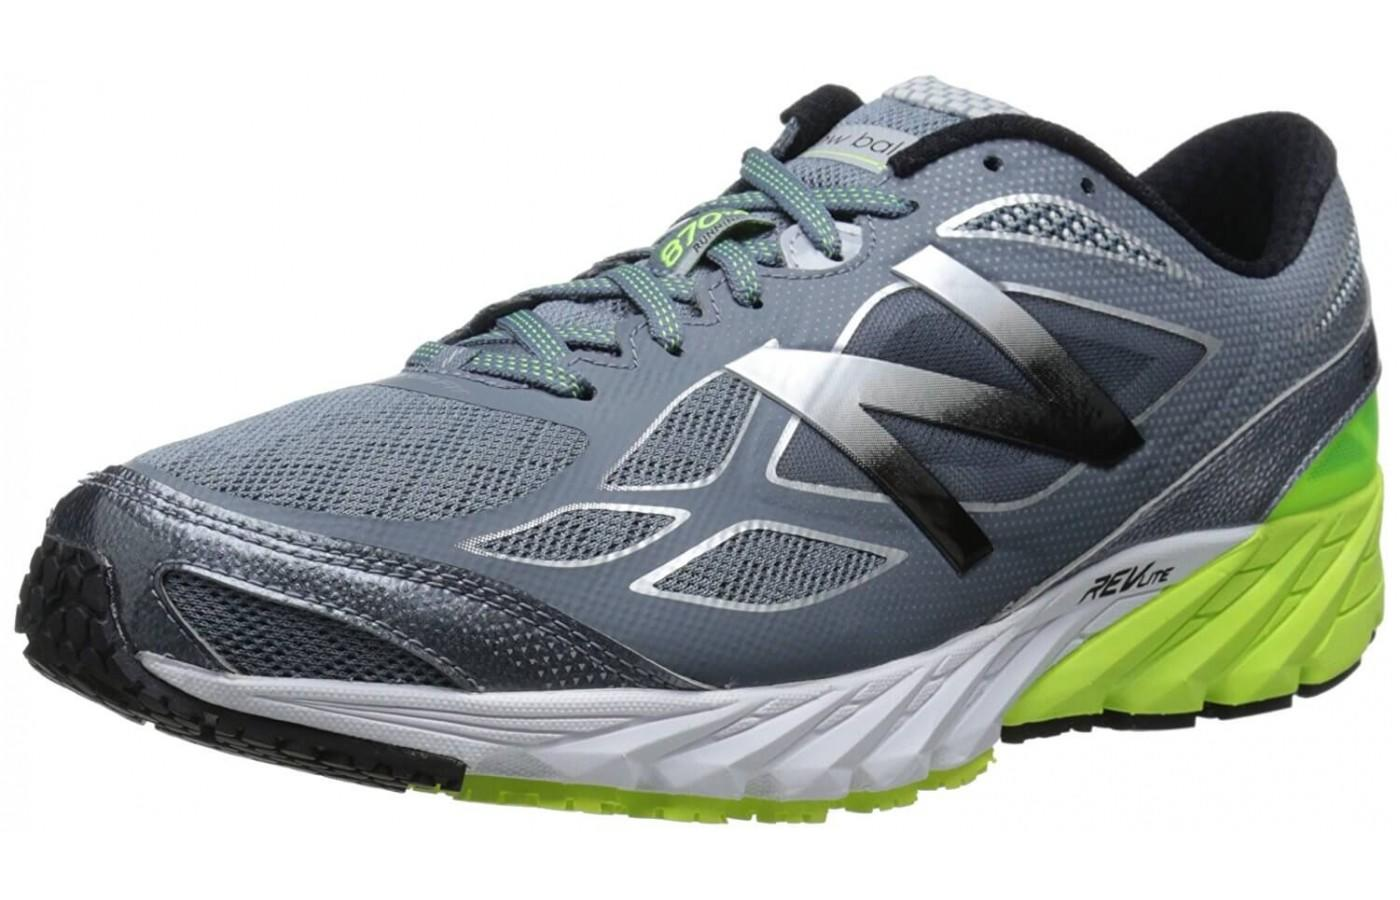 here's a look at the New Balance 870 v4